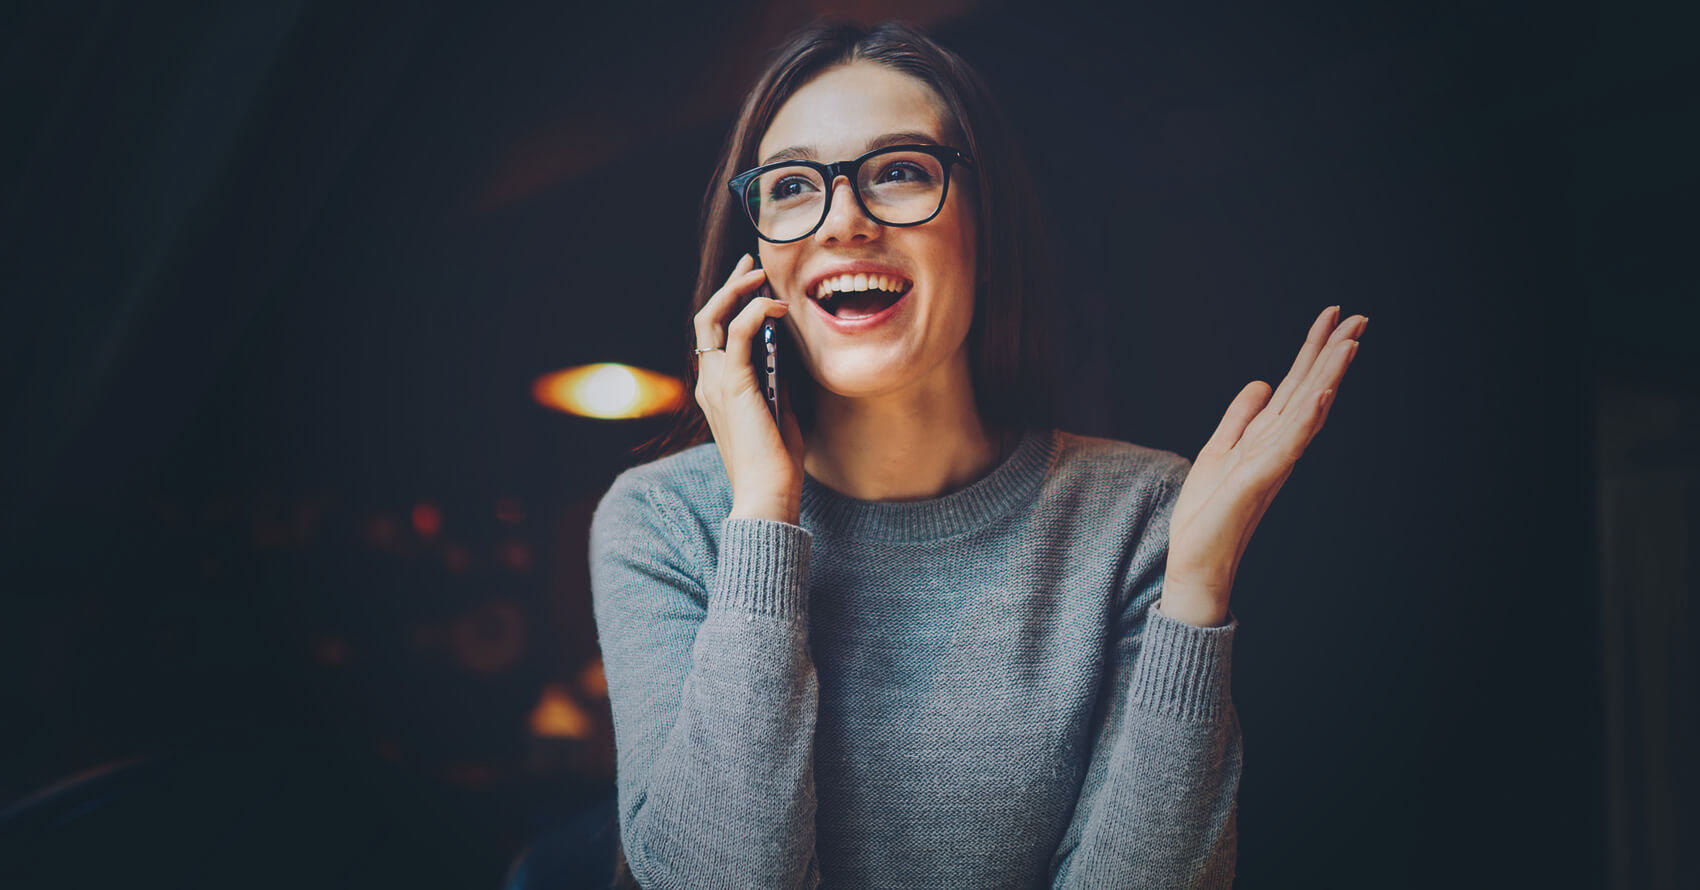 Smiling woman holding phone